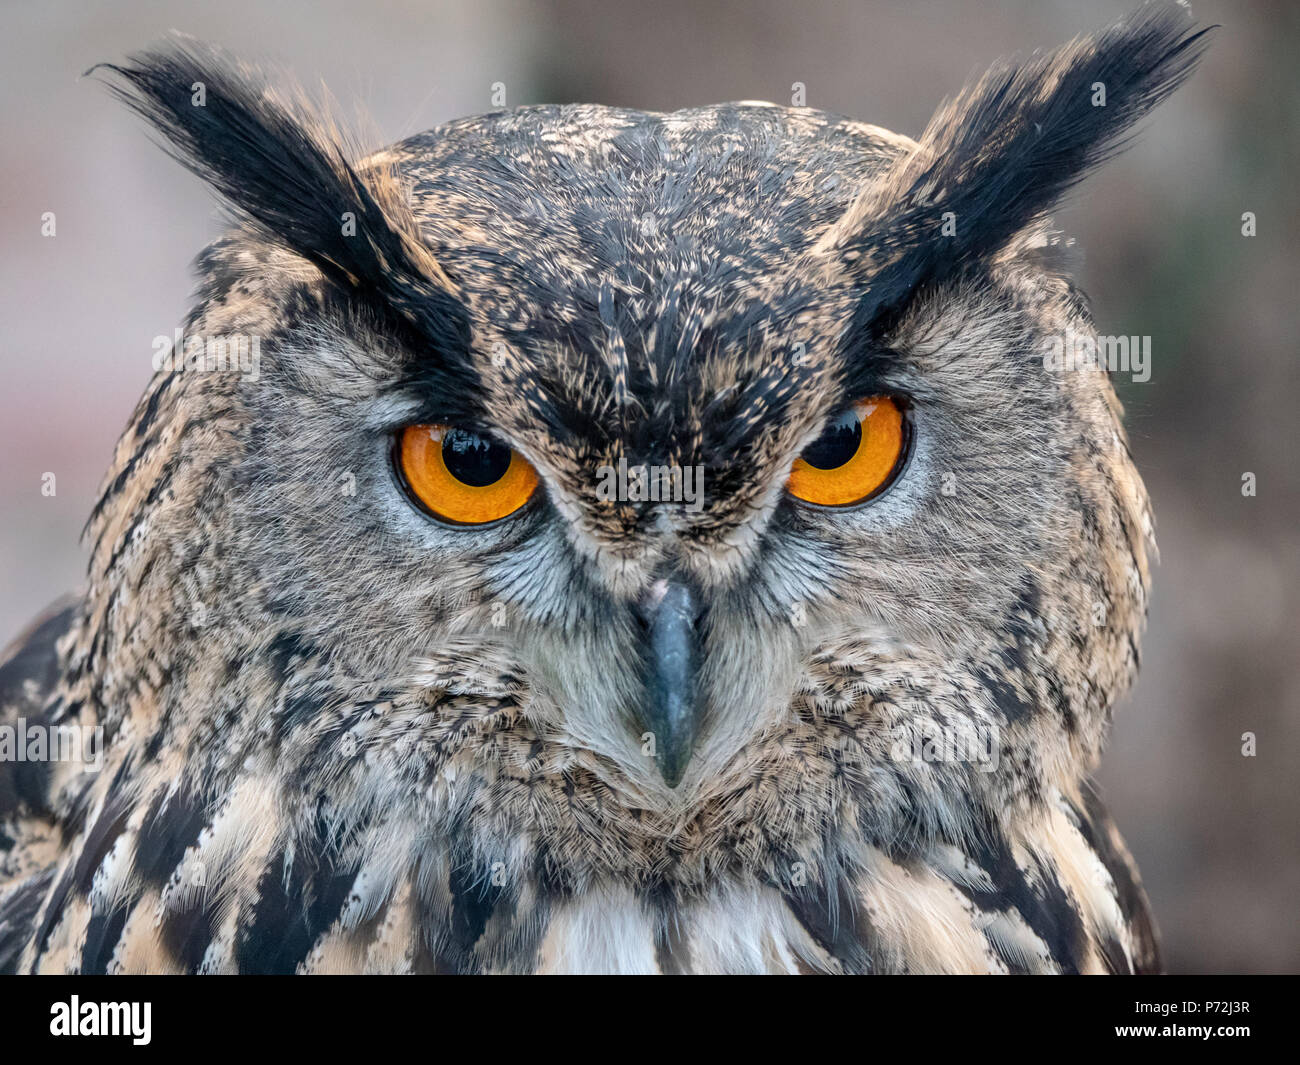 Spotted owl with orange-yellow eyes keeps an eye on his surroundings - Stock Image